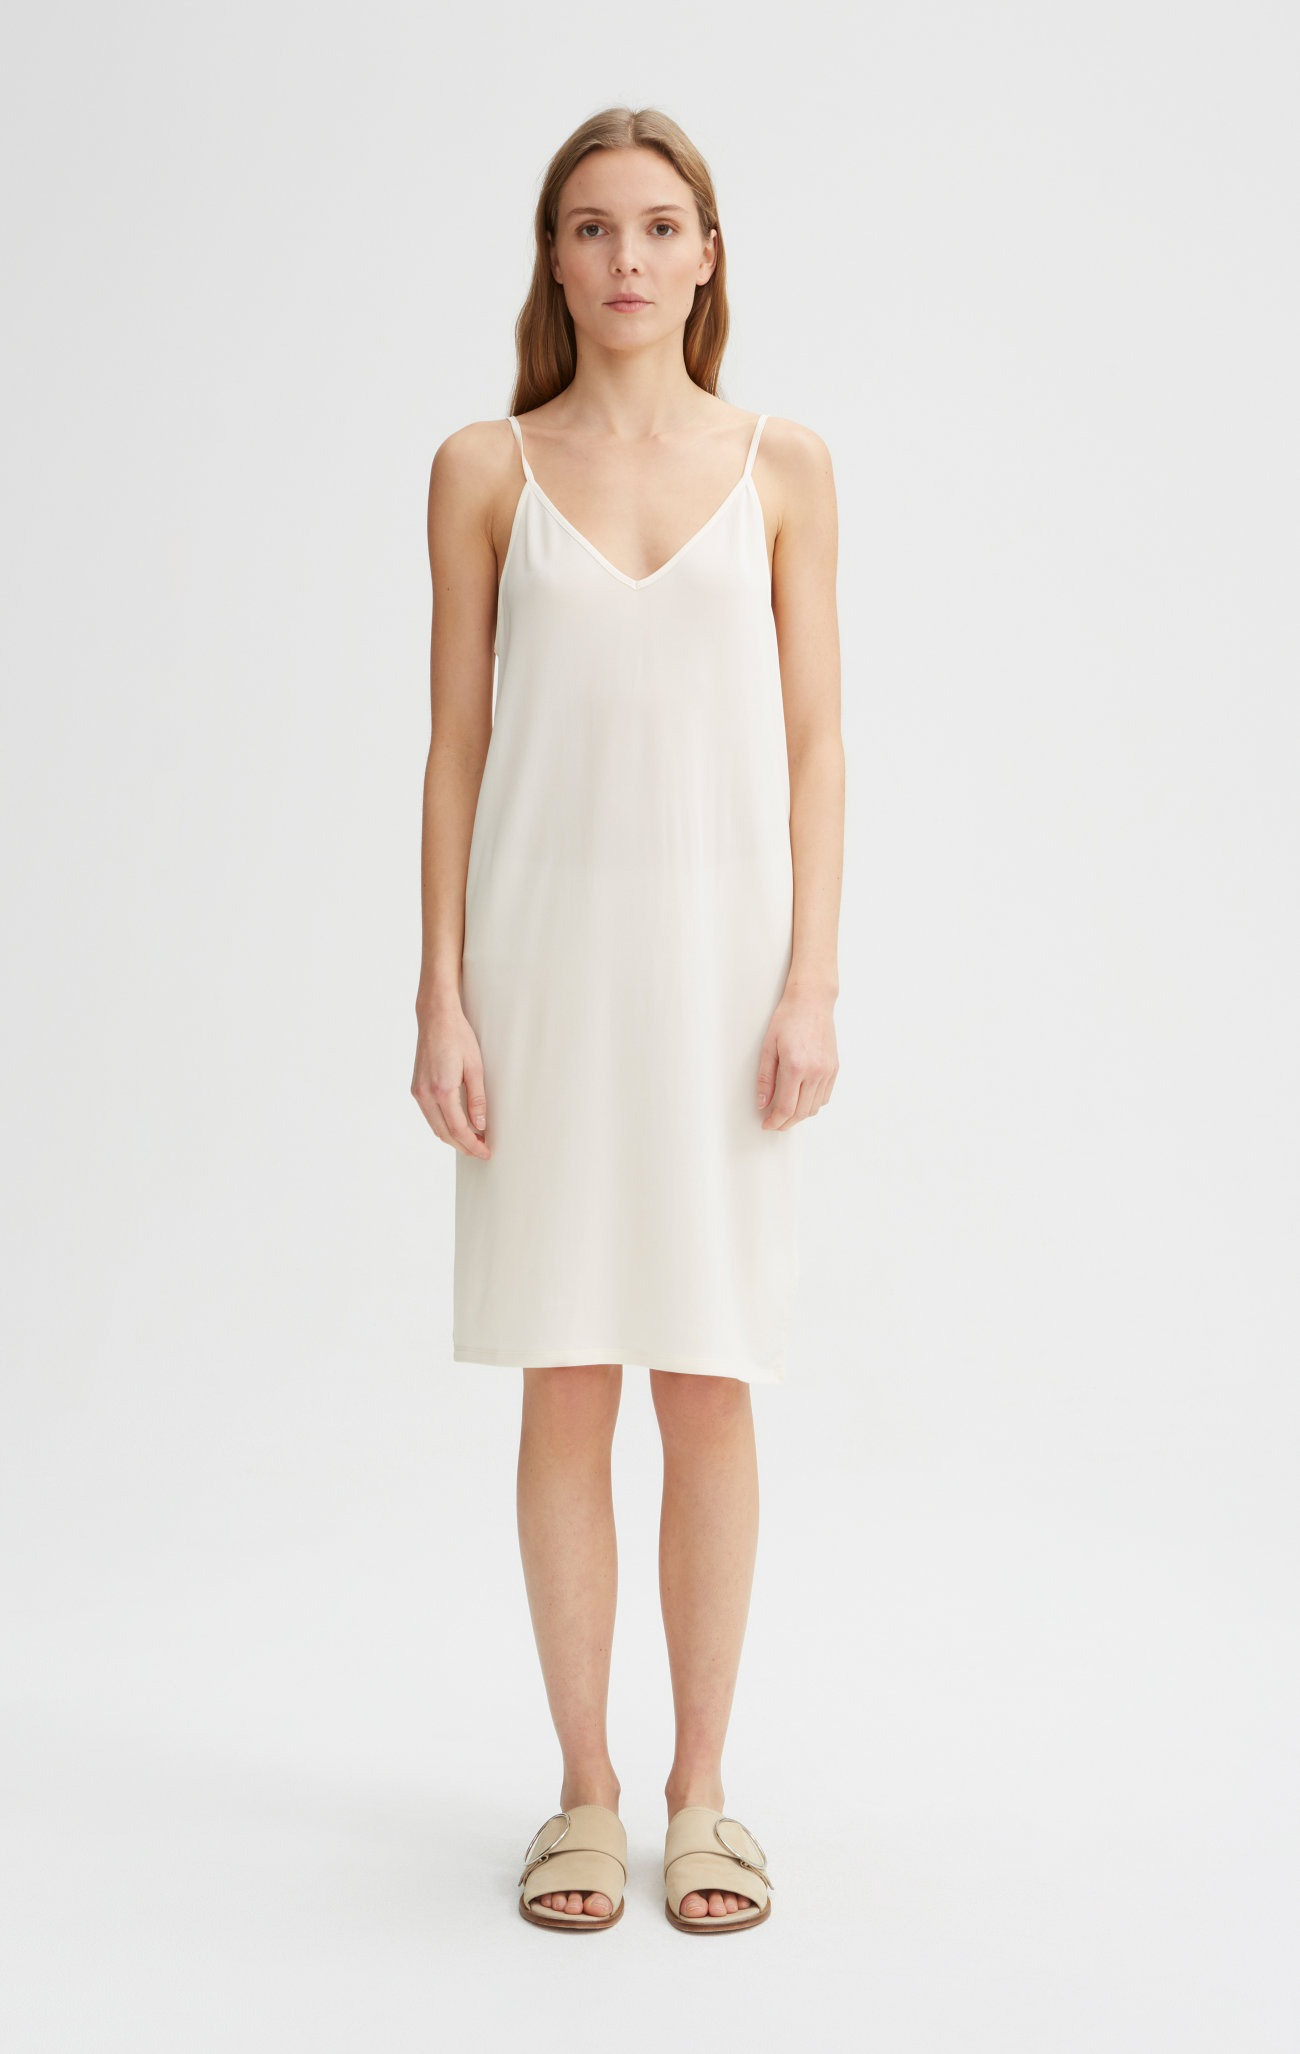 Rodebjer - Winifred Slip Dress - Off White - Front 02